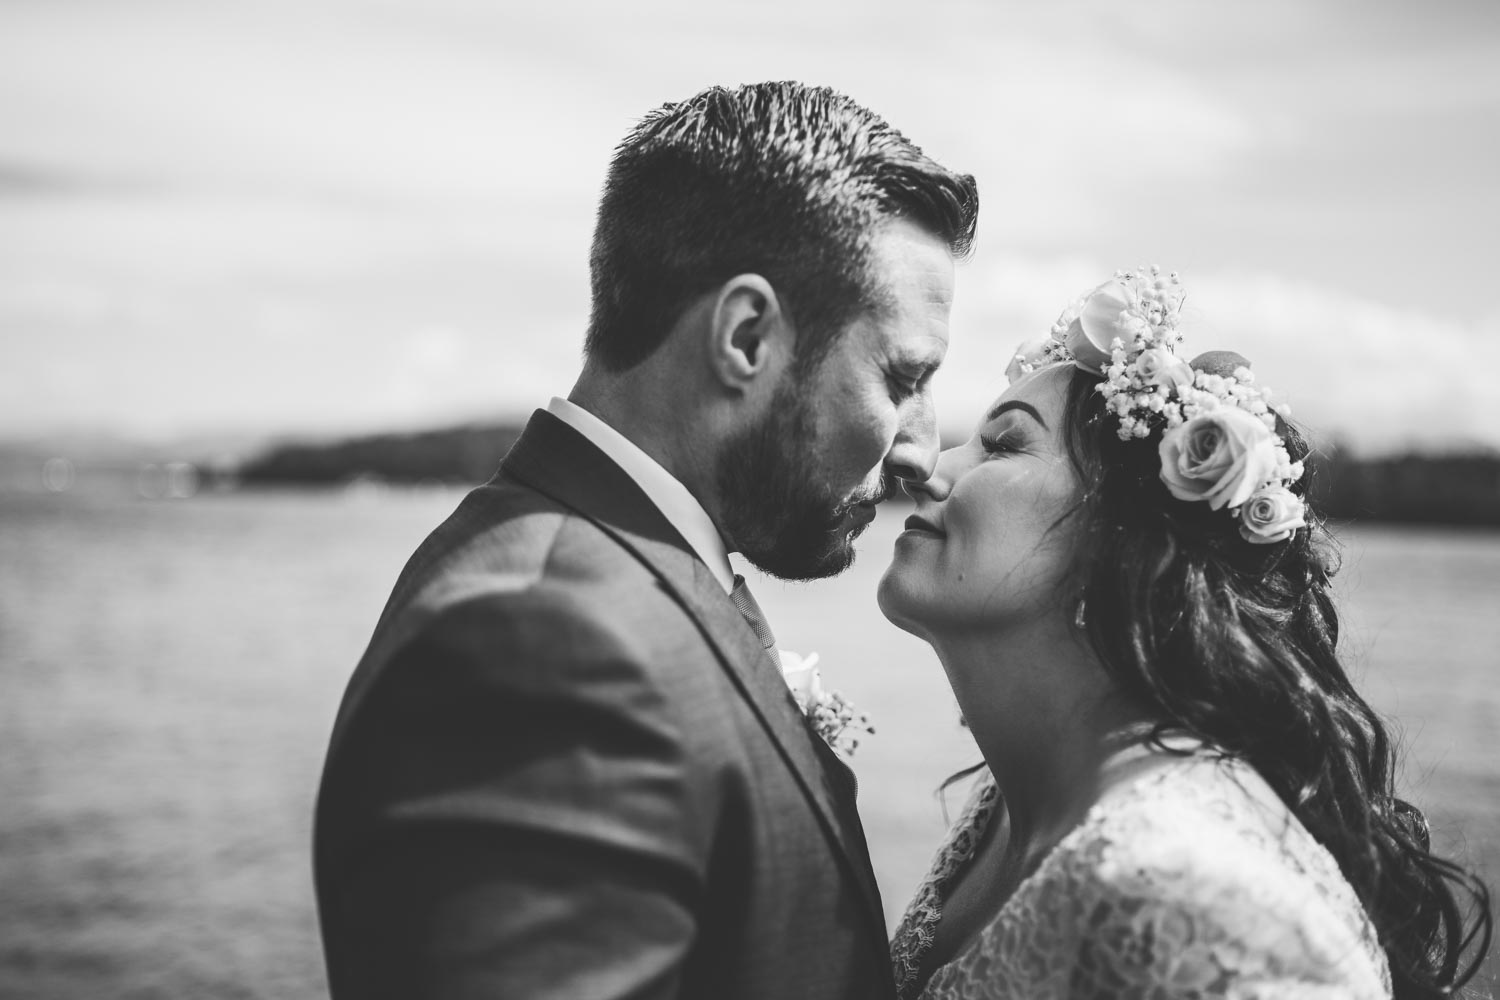 North Wales Chateau Rhianfa seaside wedding bride groom kiss.jpg